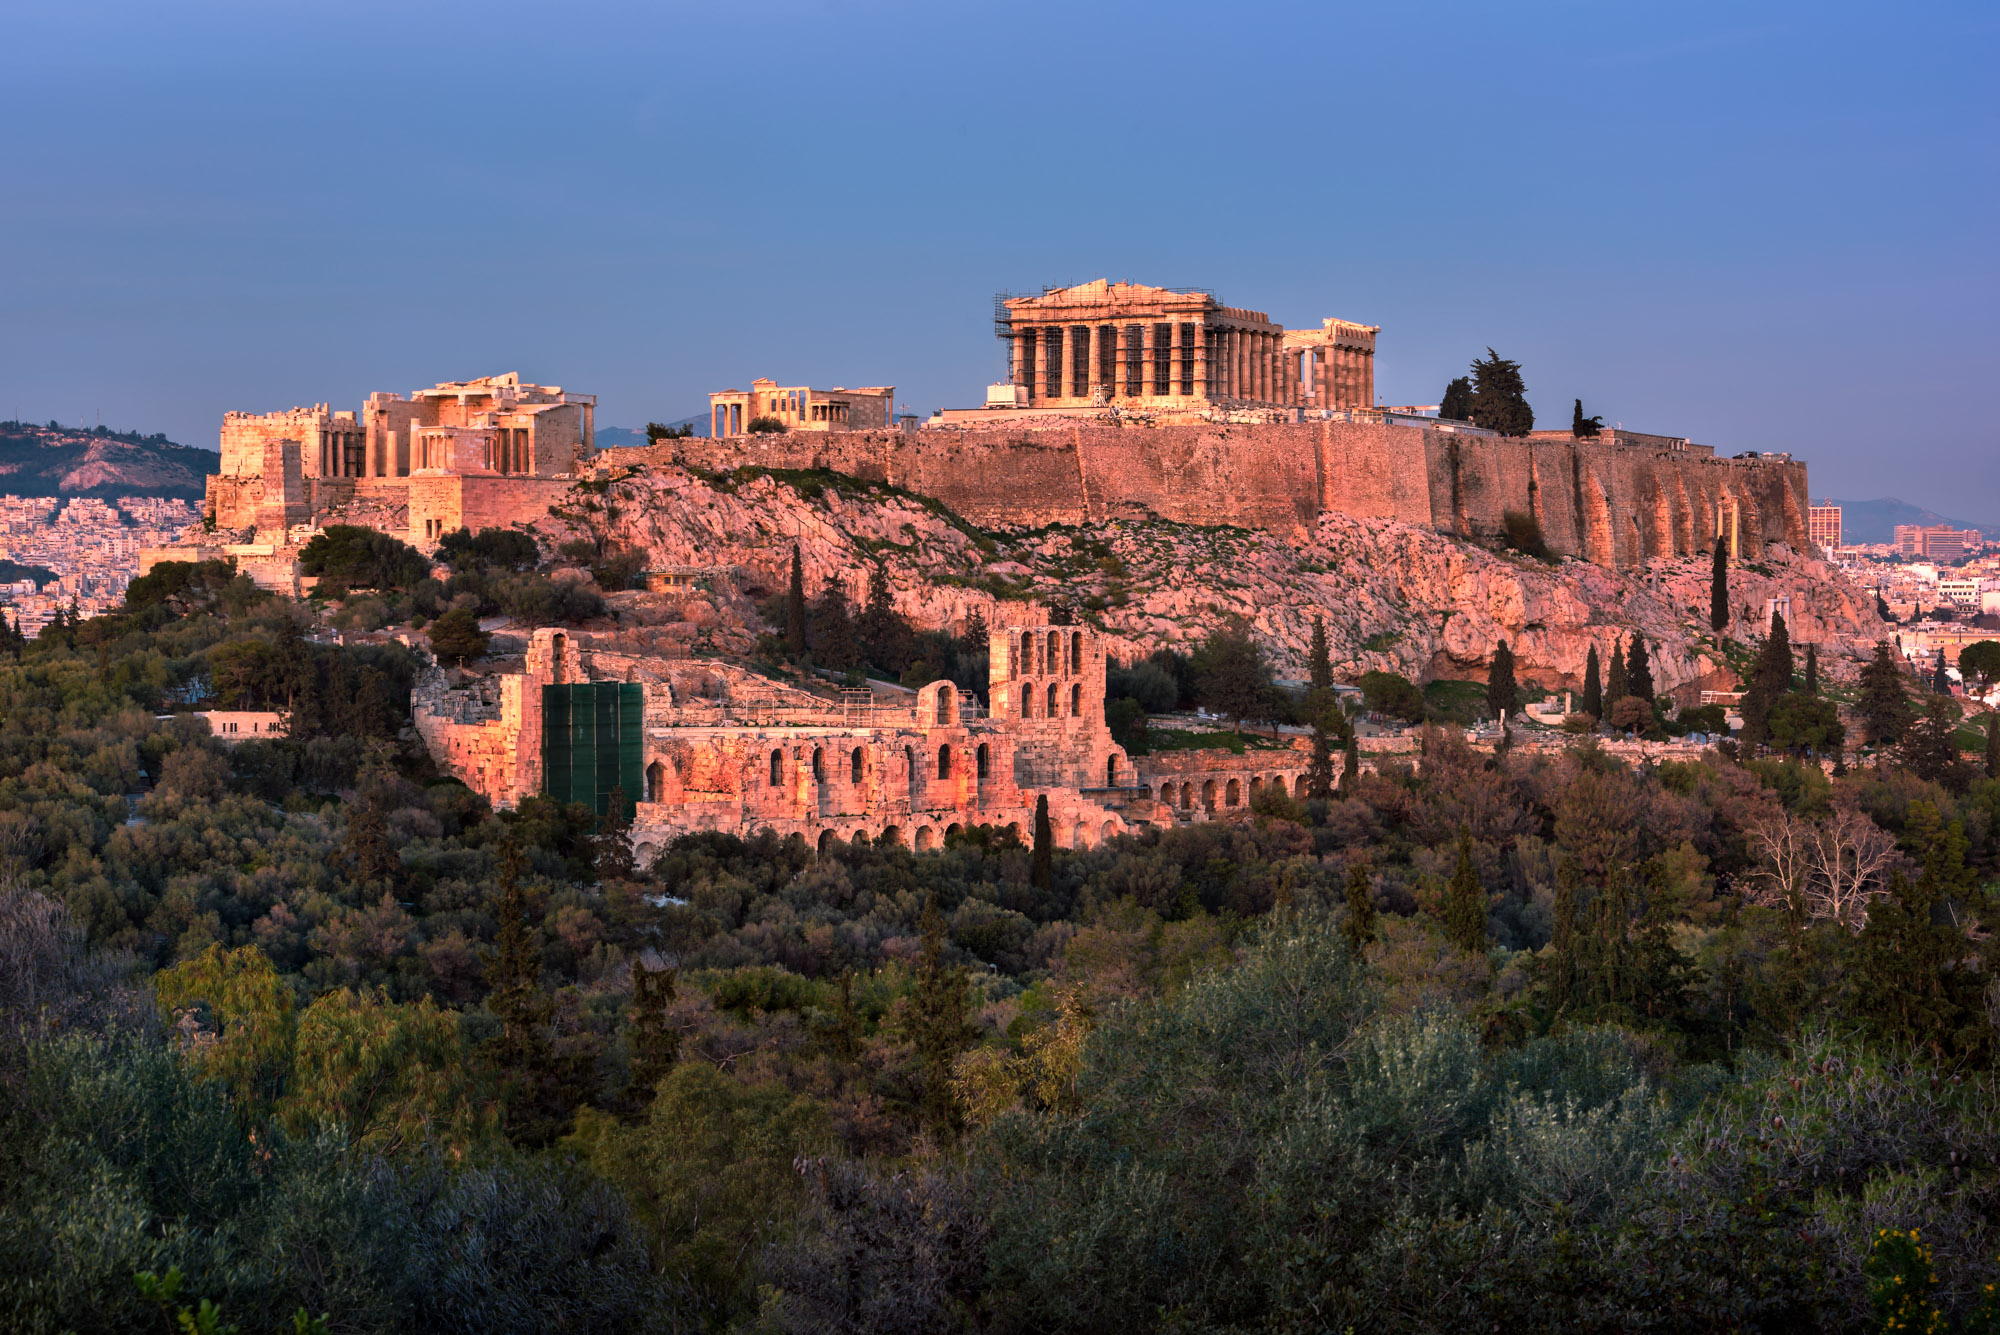 View of Acropolis from the Philopappos Hill, Athens, Greece